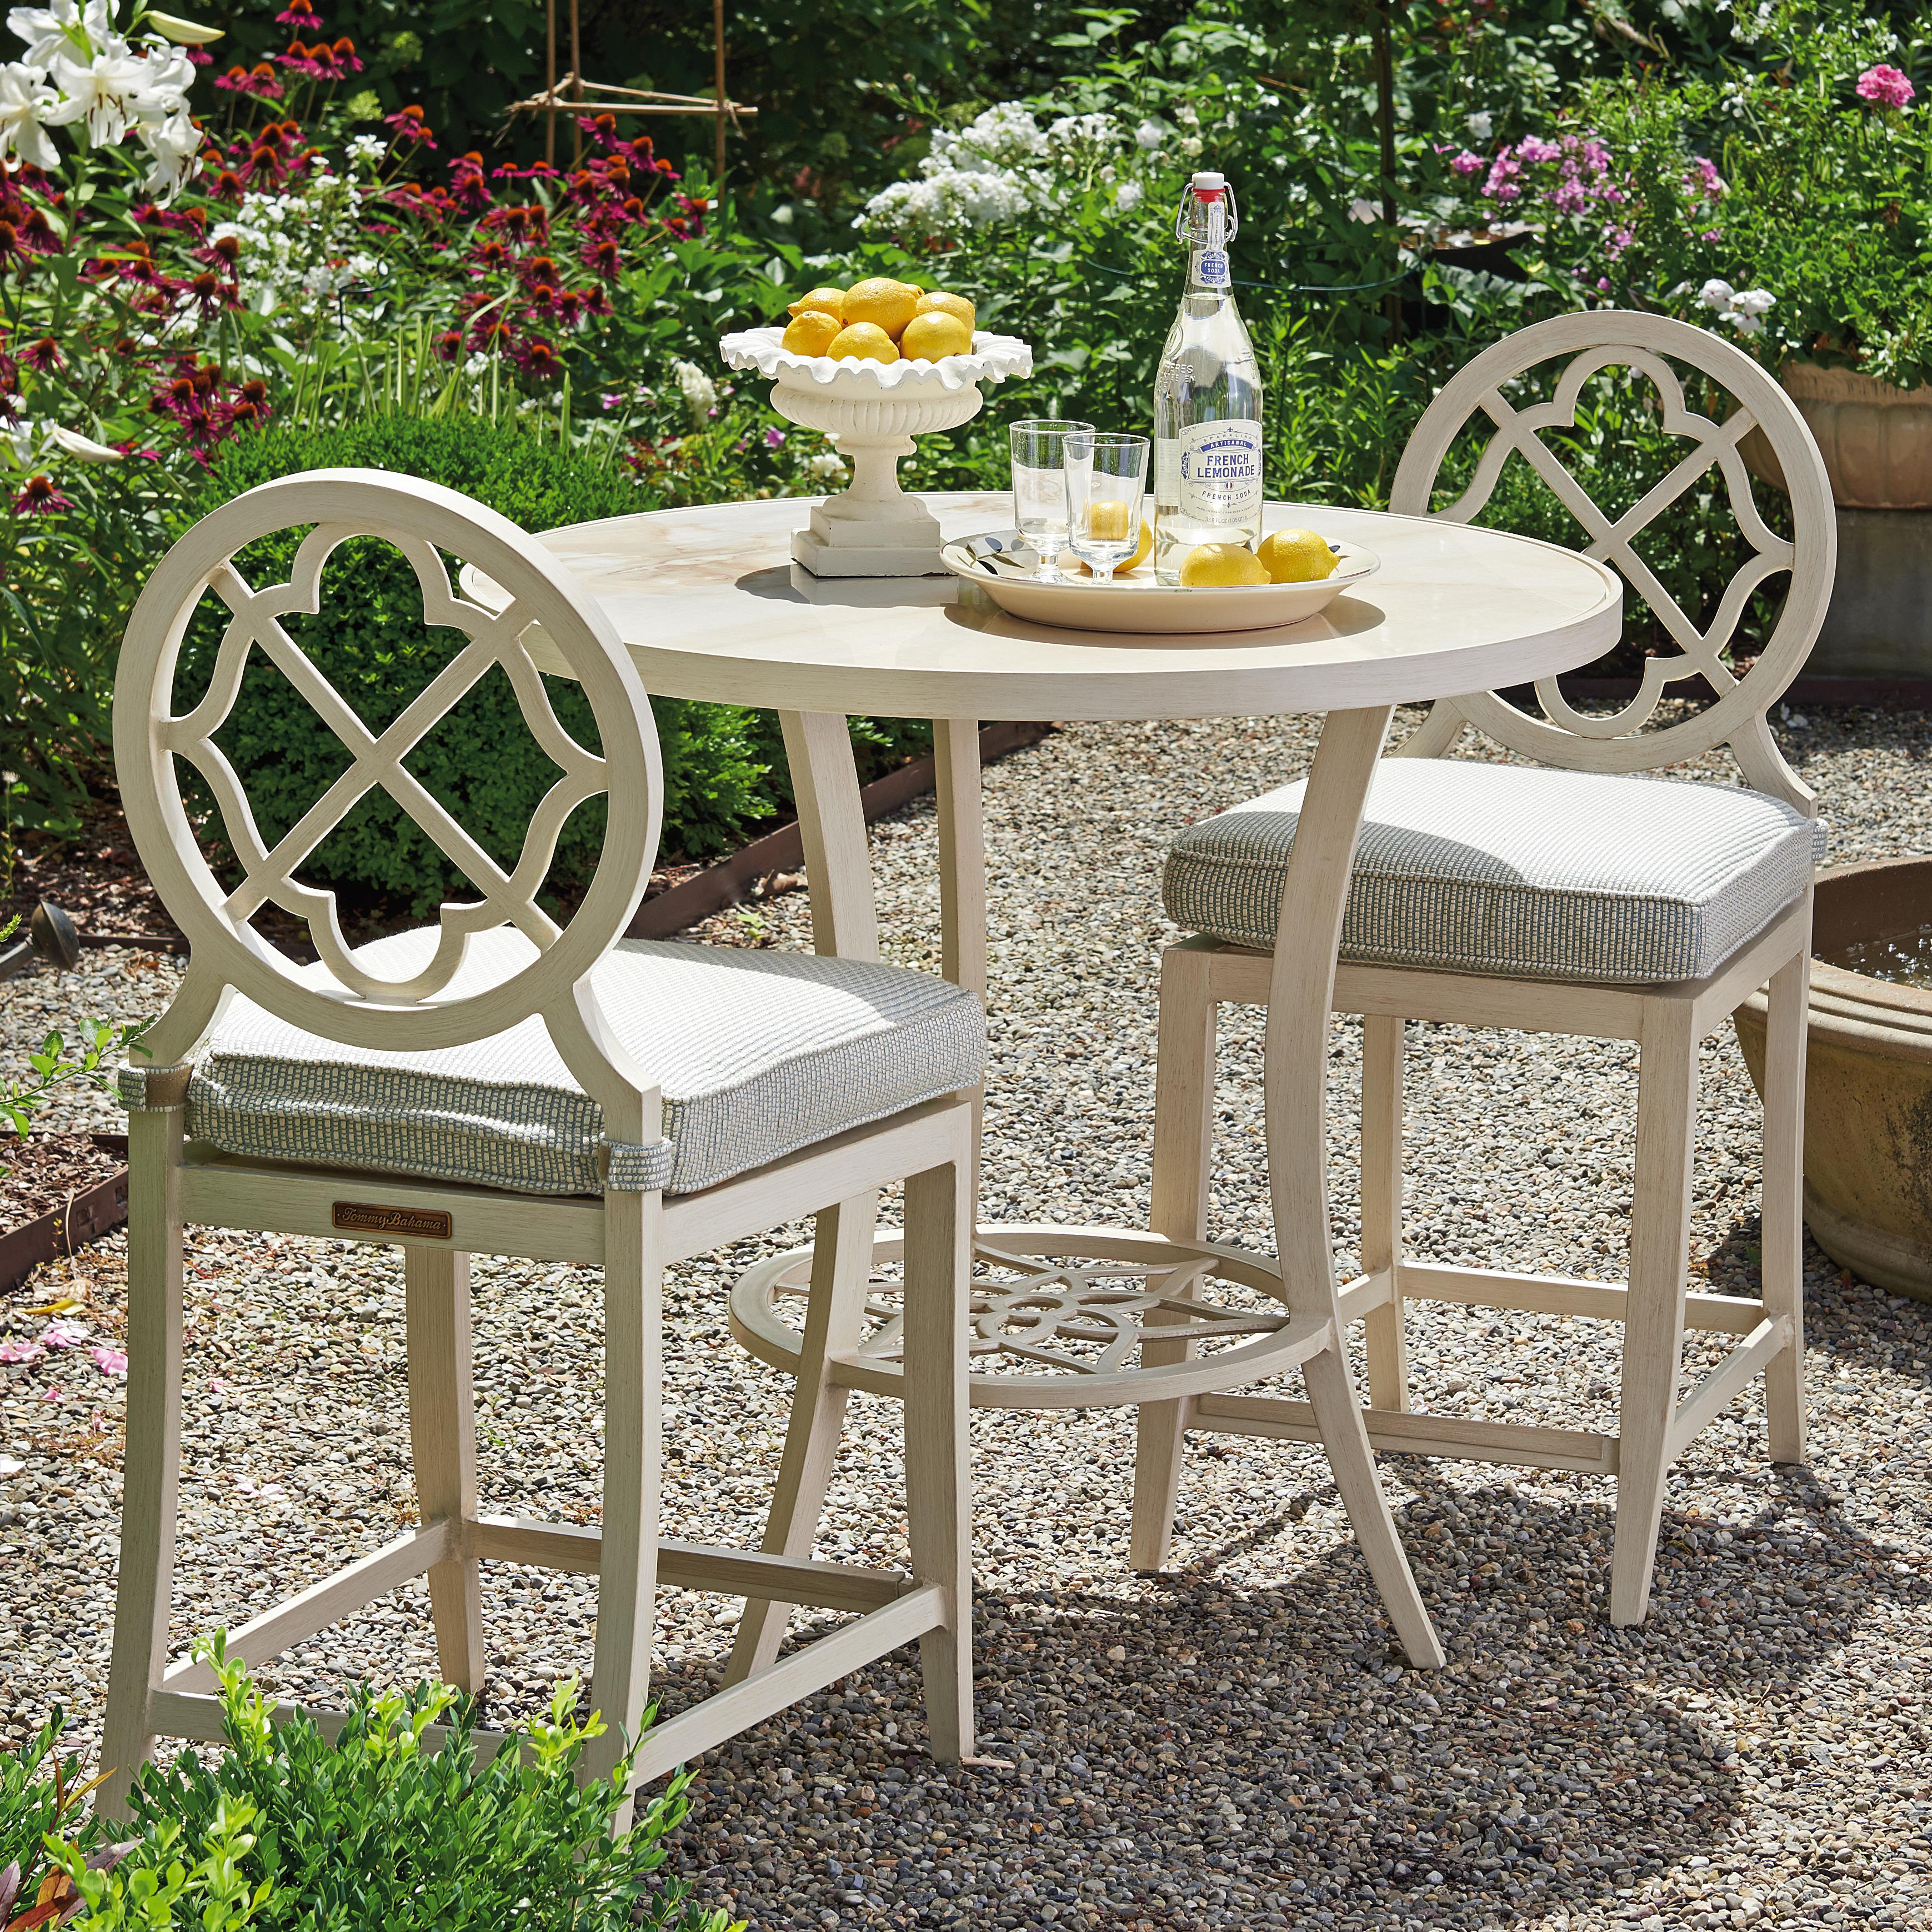 3 Pc High/Low Bistro Table w/ Counter Stools